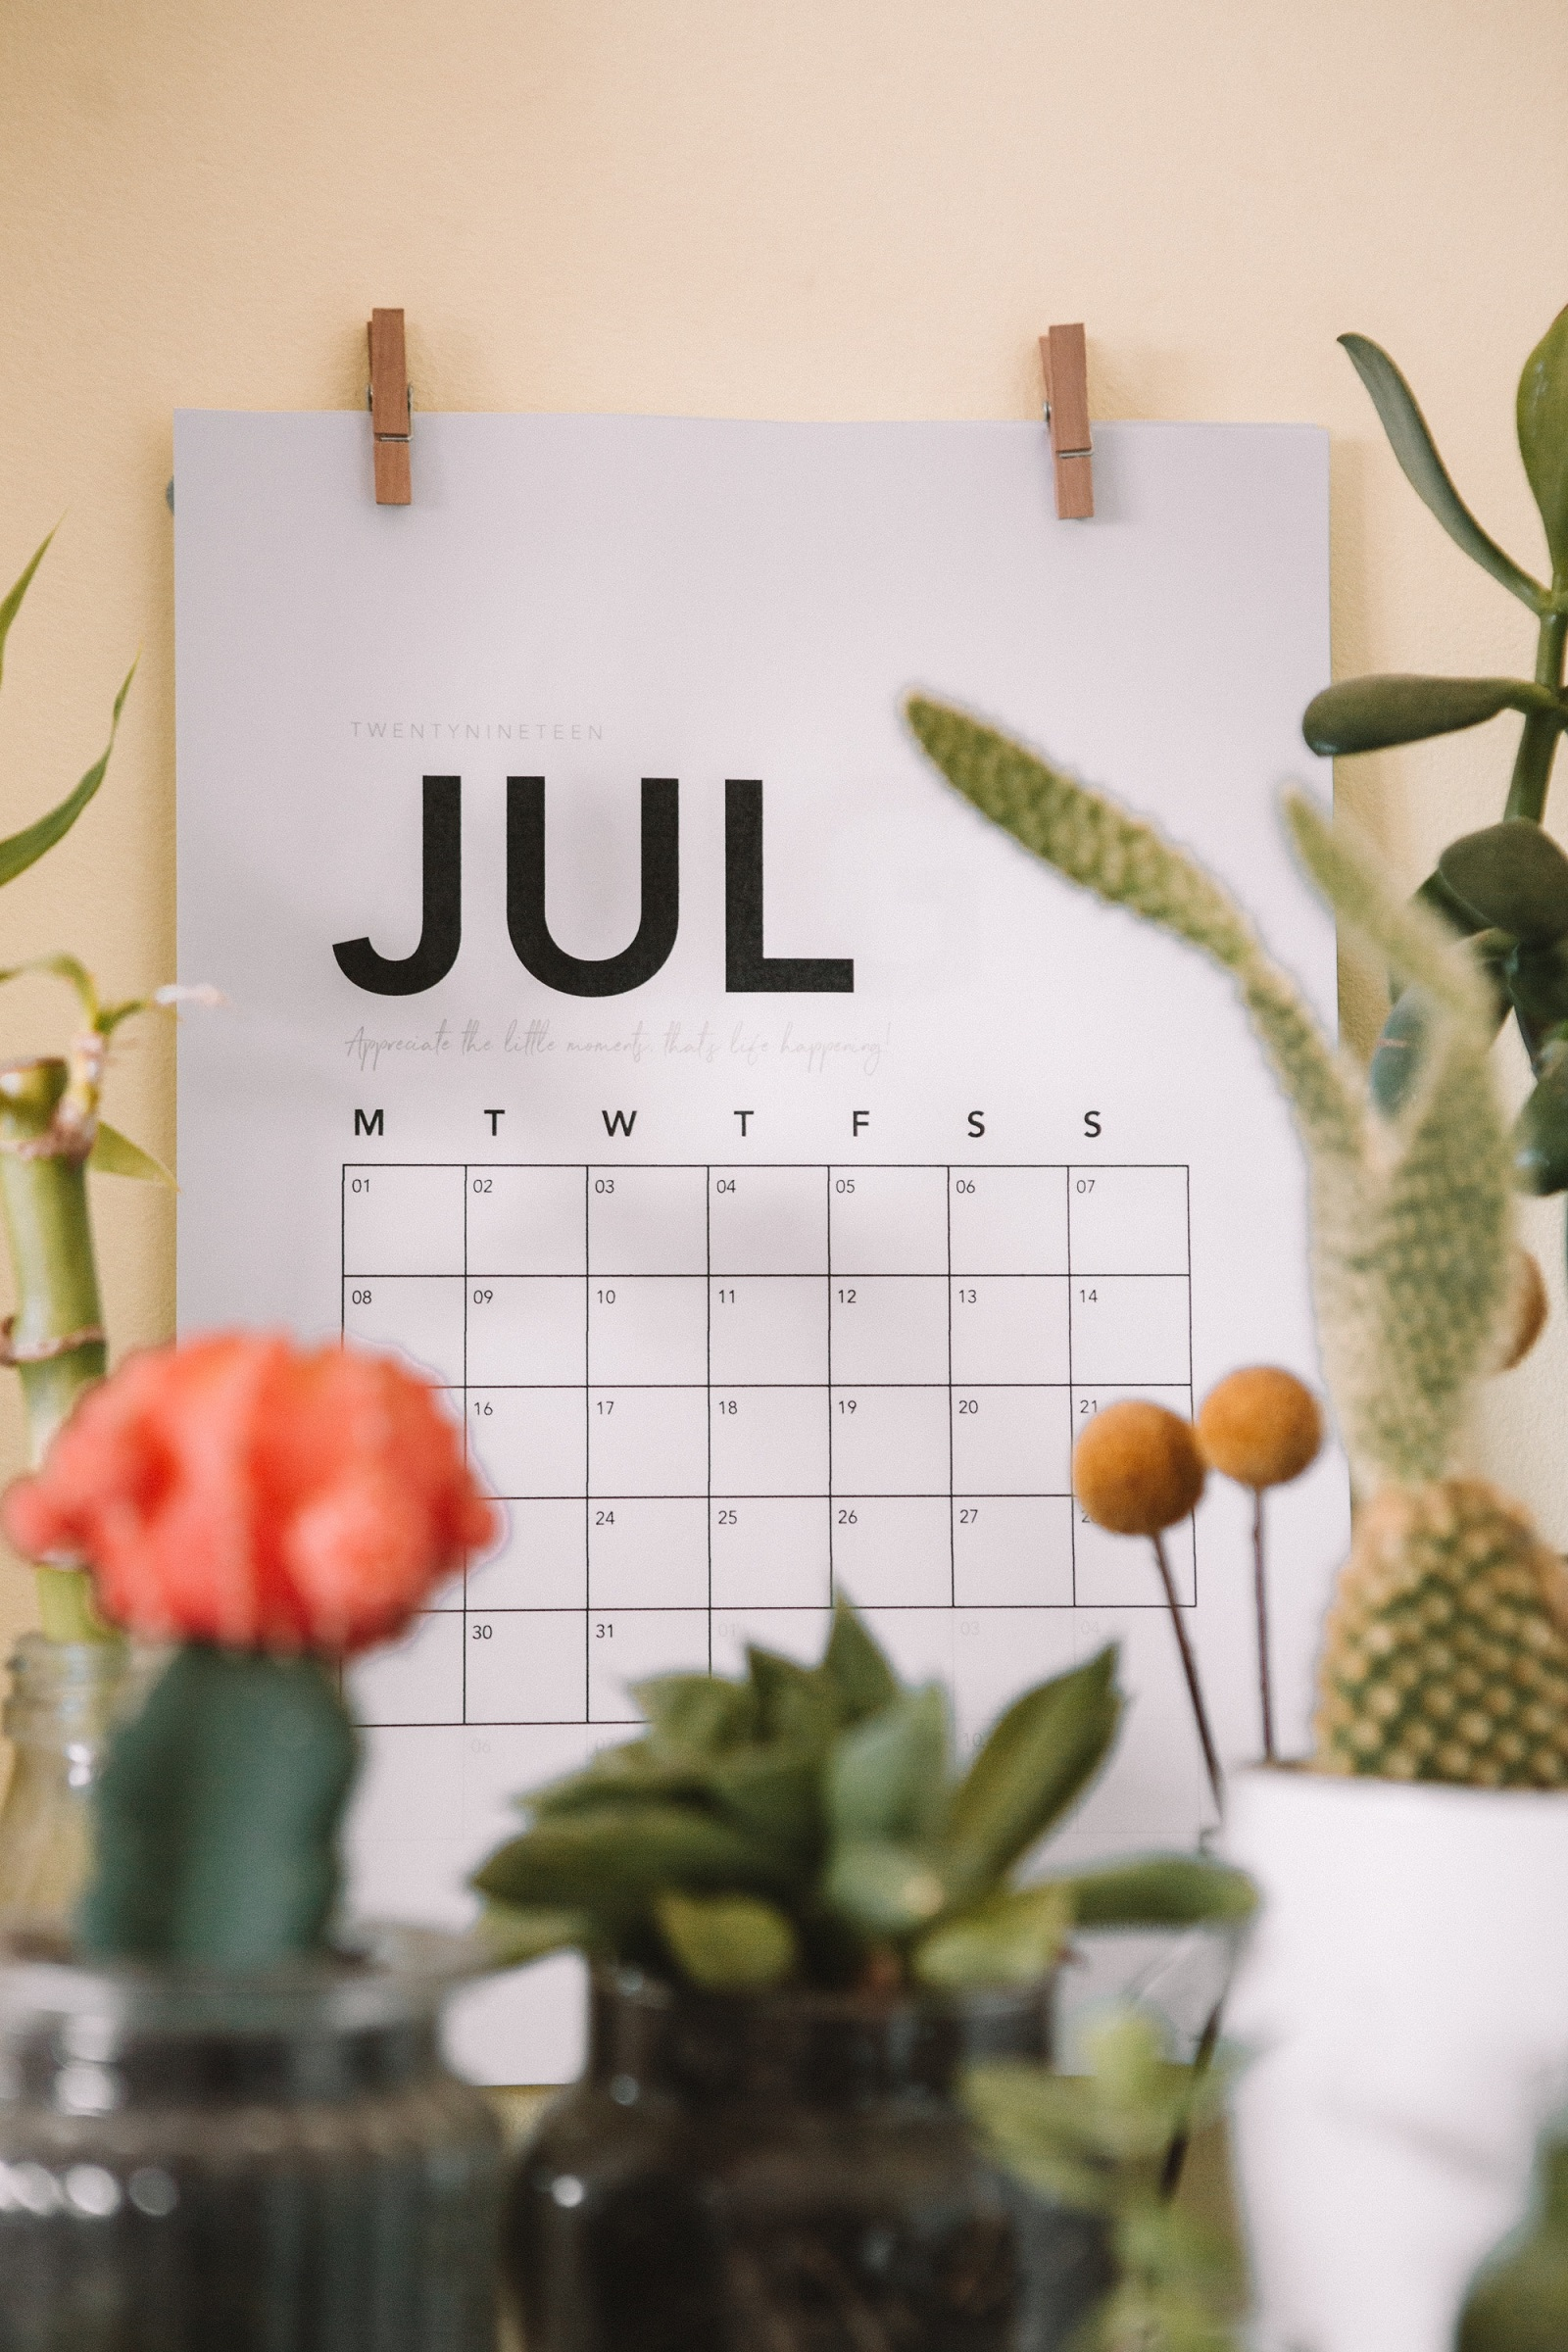 July calendar for Jean-Luc Andriot blog 070119